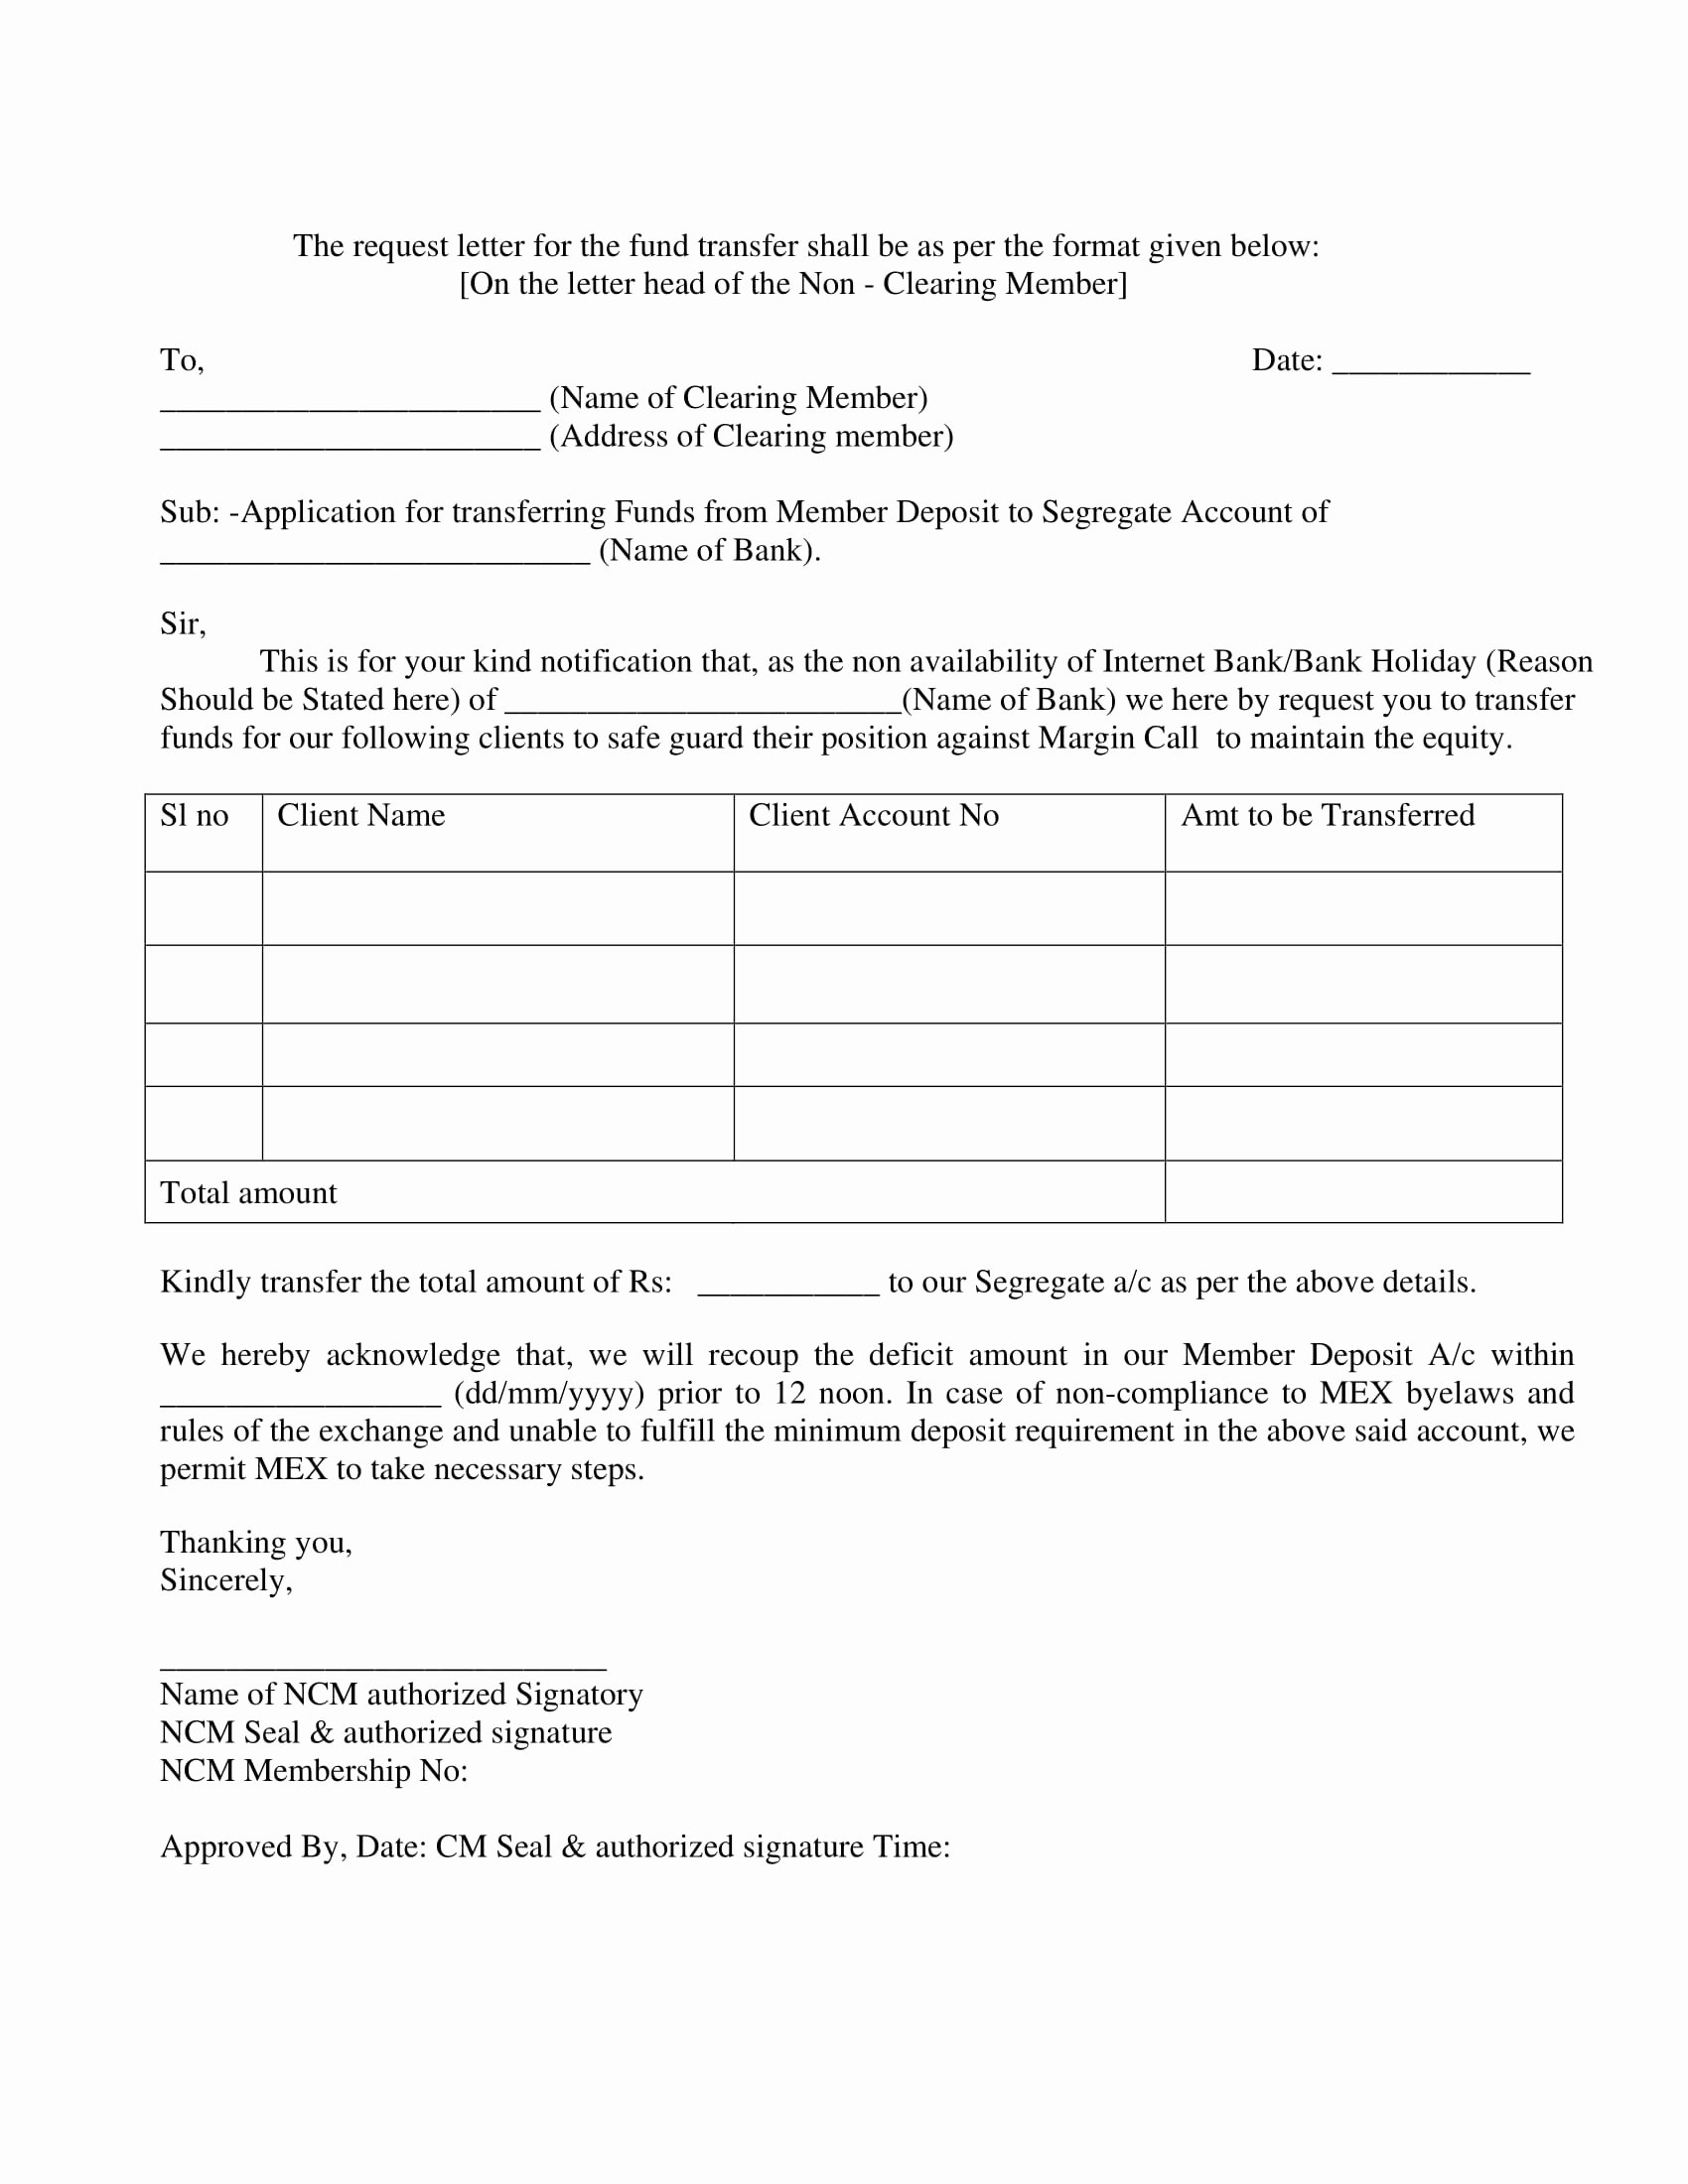 Request for Funds form Template Best Of 9 Transfer Request Letter Examples Pdf Doc